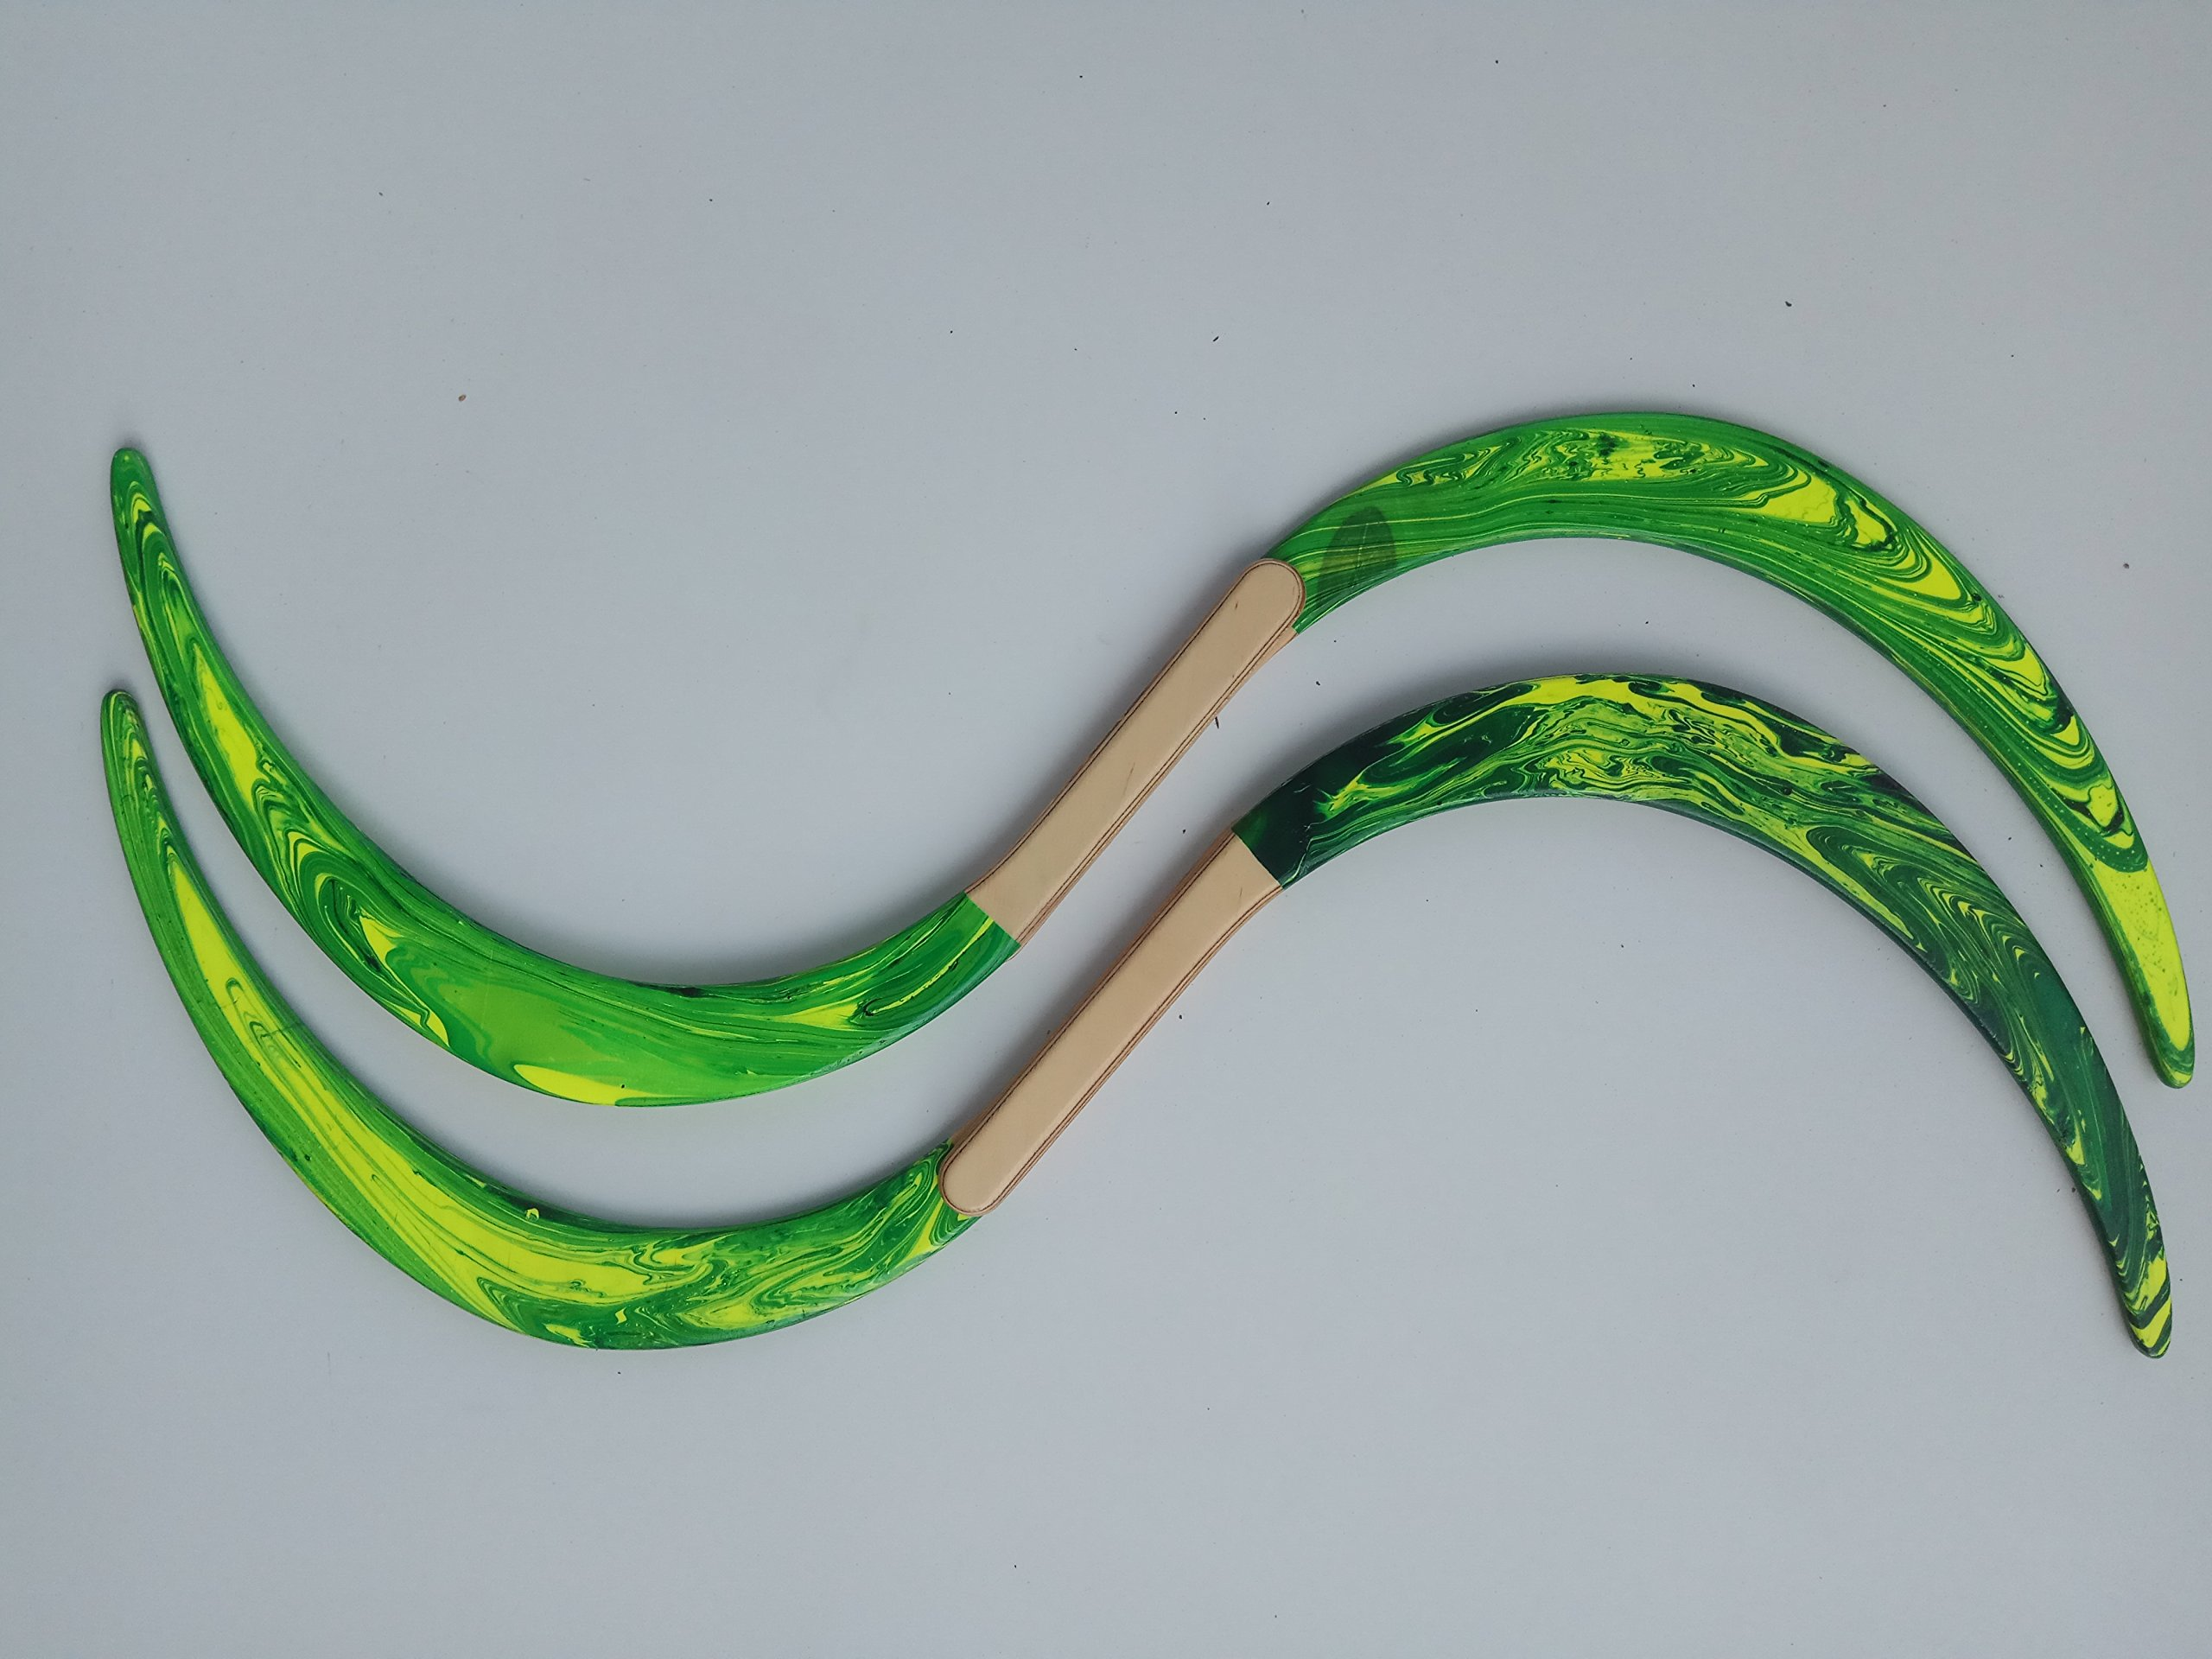 Swirl Buugeng Juggling S Staff S Staves Bugeng Hand Made 2 Pieces Yellow and Green Glows in UV Carry Bag by Buugeng Flow Master J.A.H (Image #5)